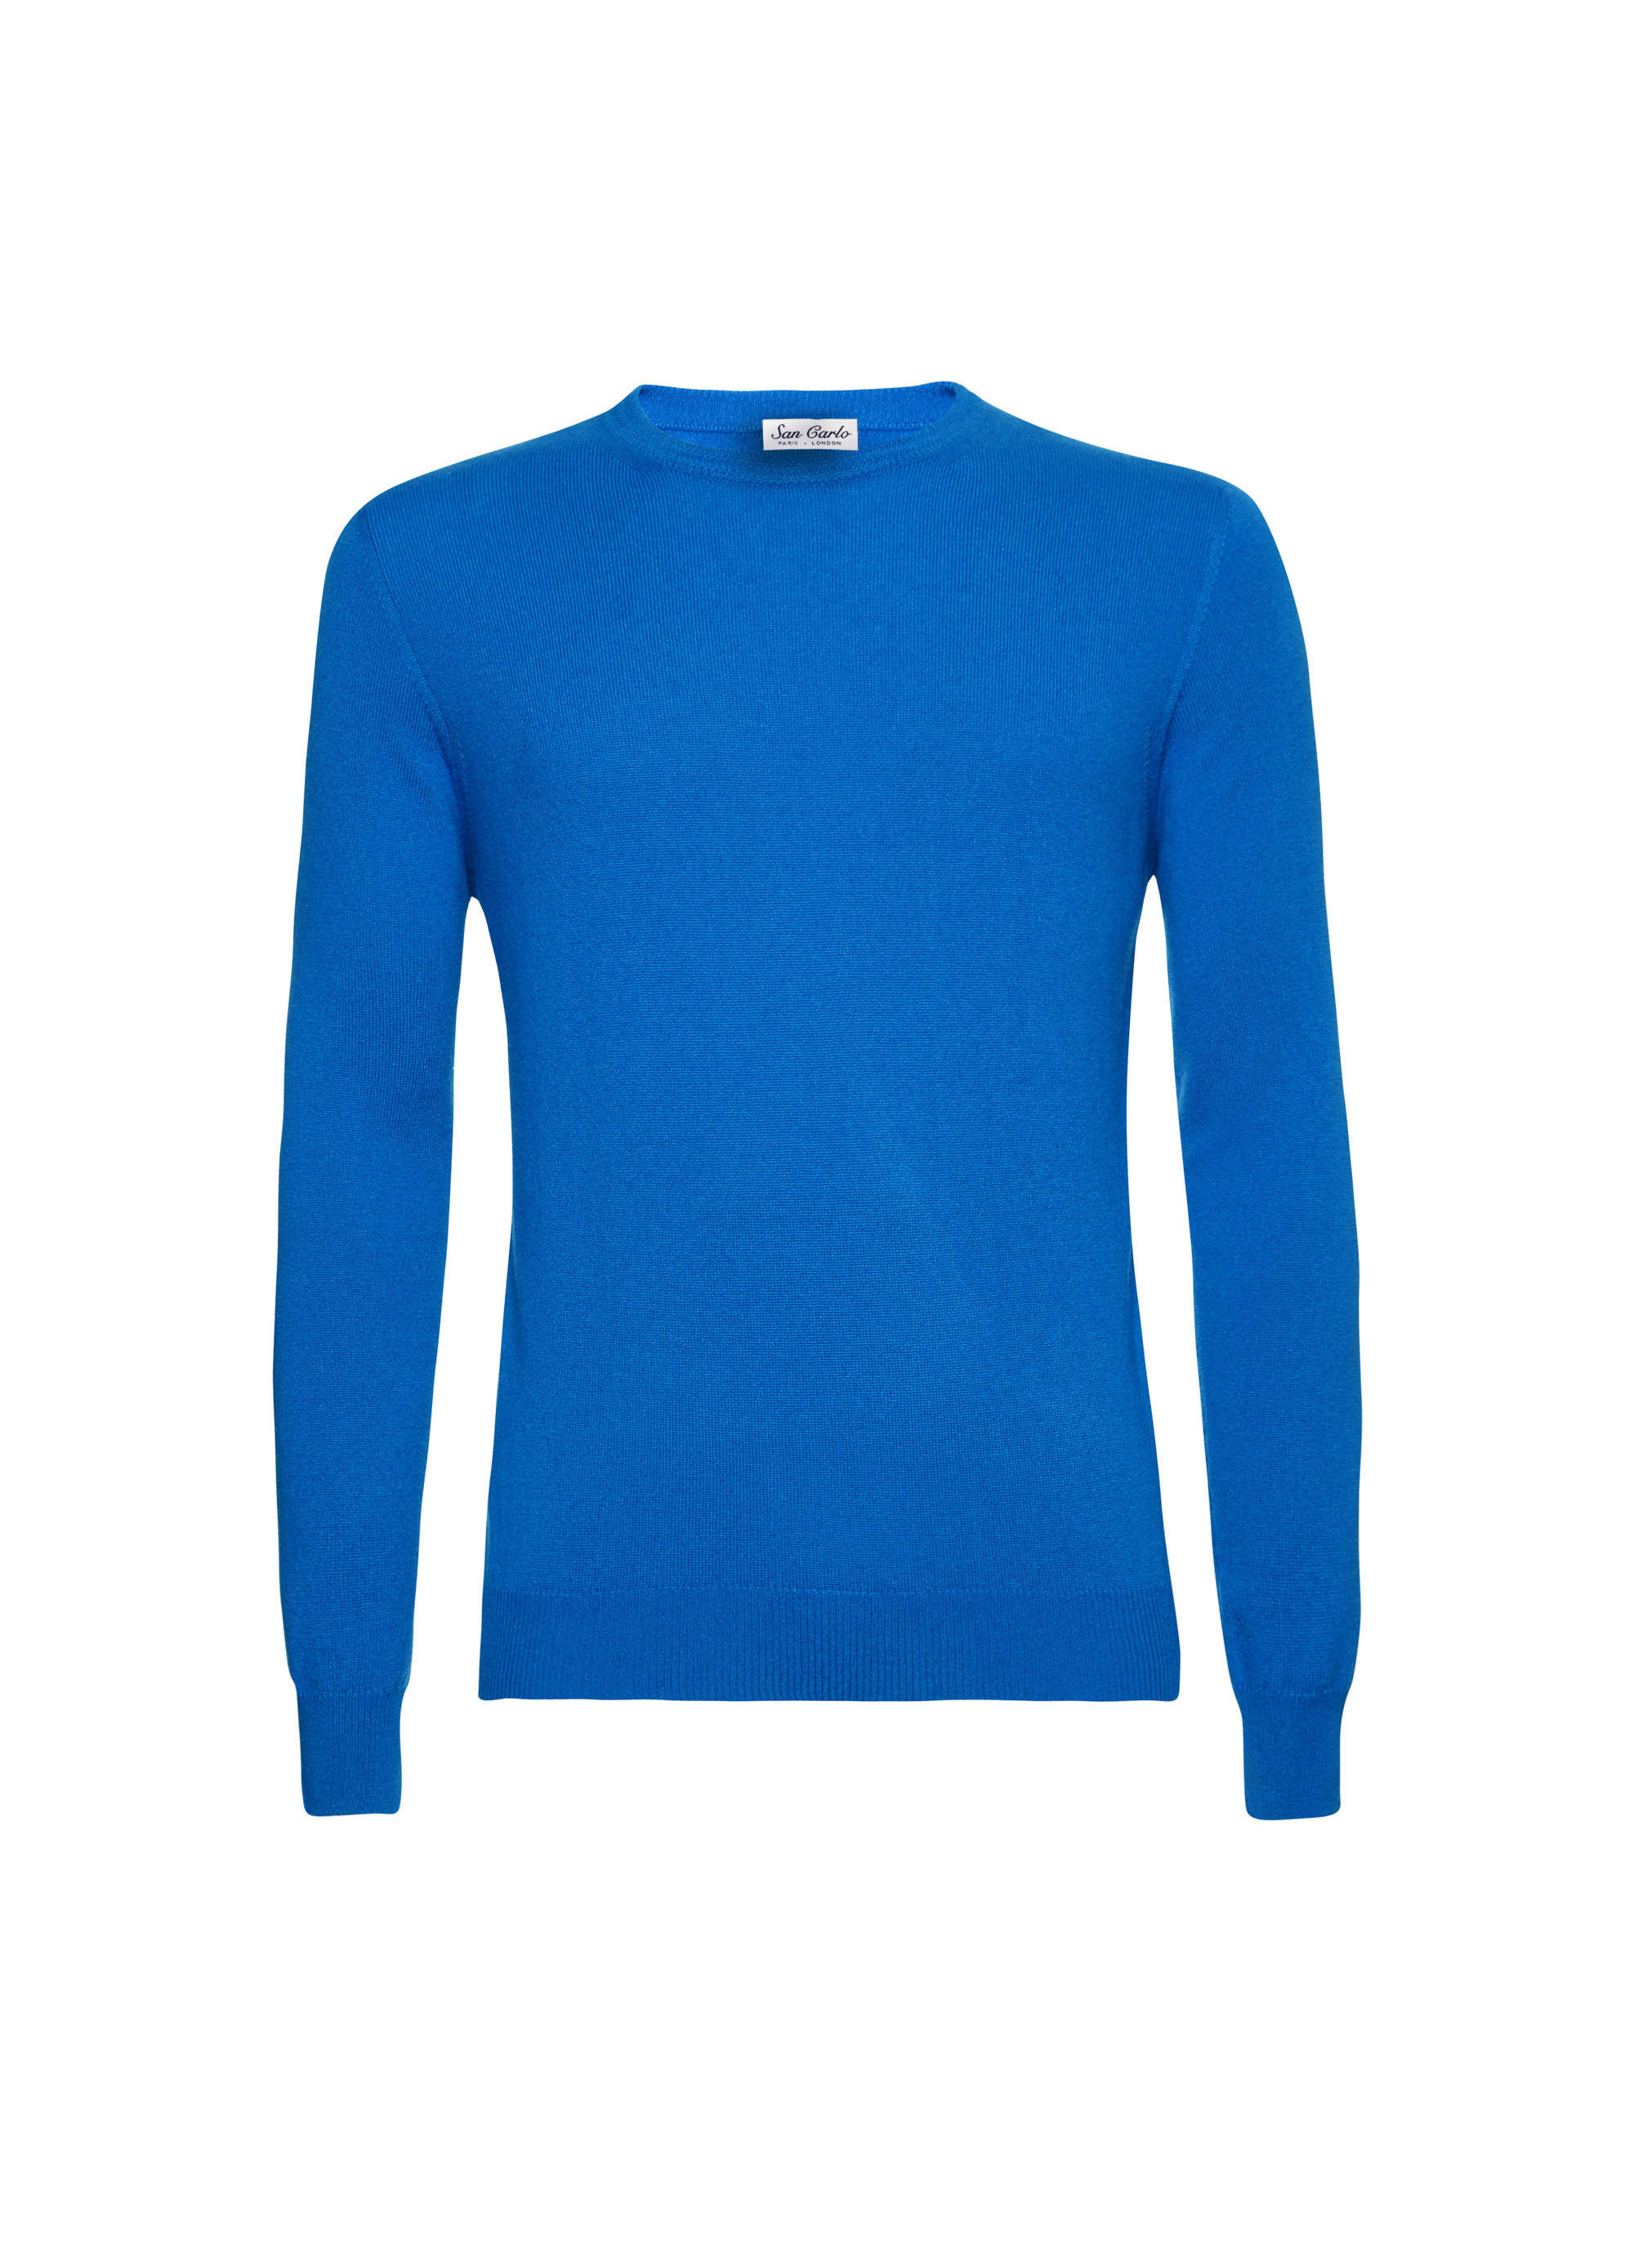 Round Neck Cashmere royal blue 02